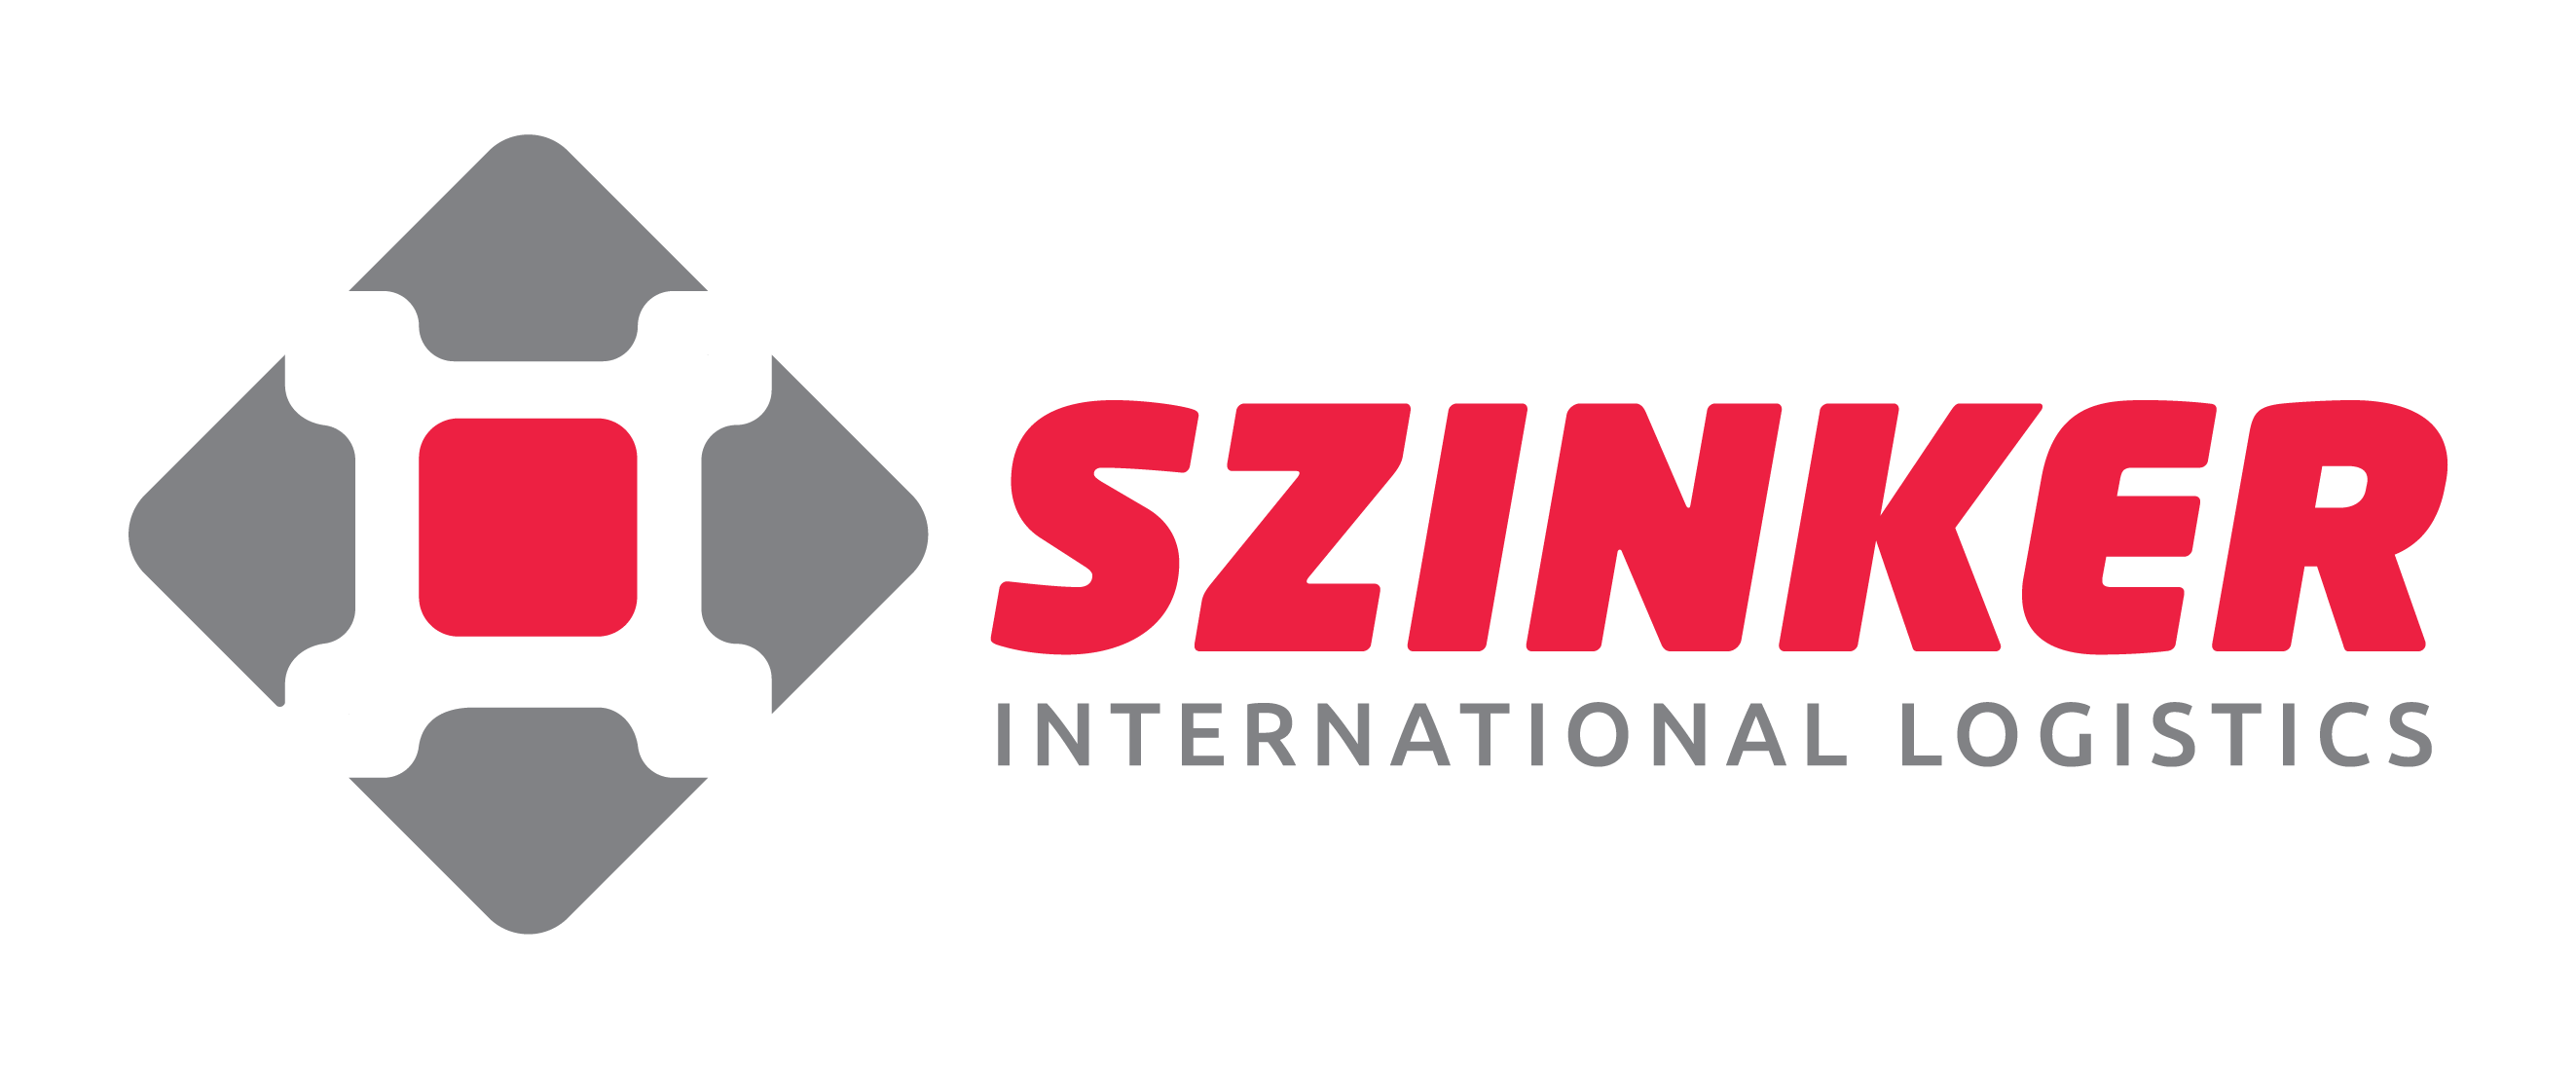 Szinker International Logistics